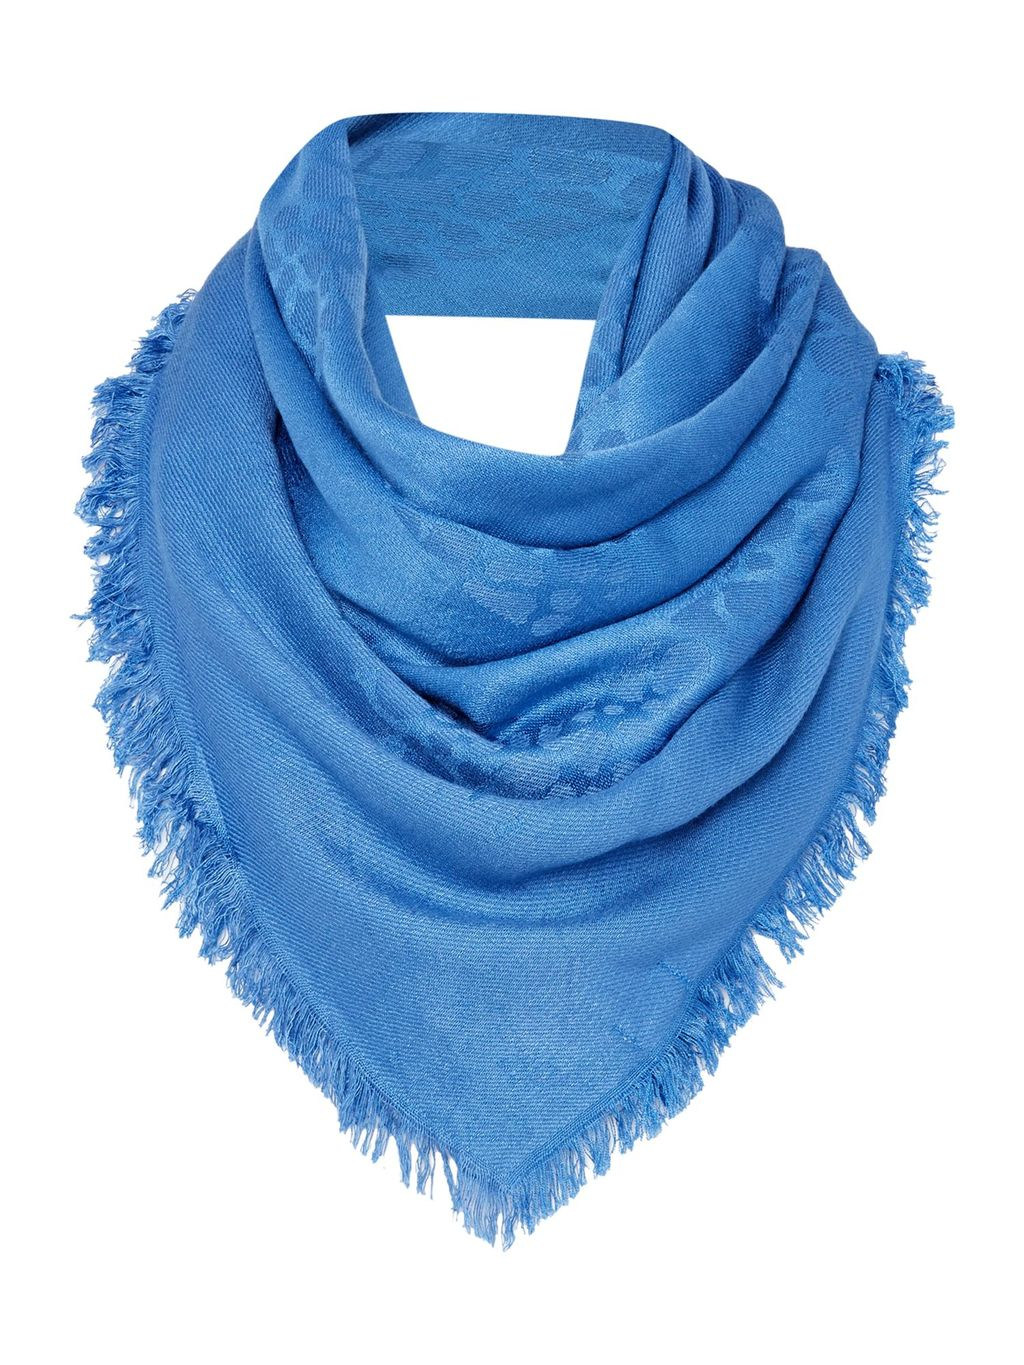 Leopard Matt And Shine Jacquard Scarf, Blue - predominant colour: diva blue; type of pattern: light; style: regular; size: standard; material: fabric; embellishment: fringing; pattern: patterned/print; occasions: creative work; season: s/s 2016; wardrobe: highlight